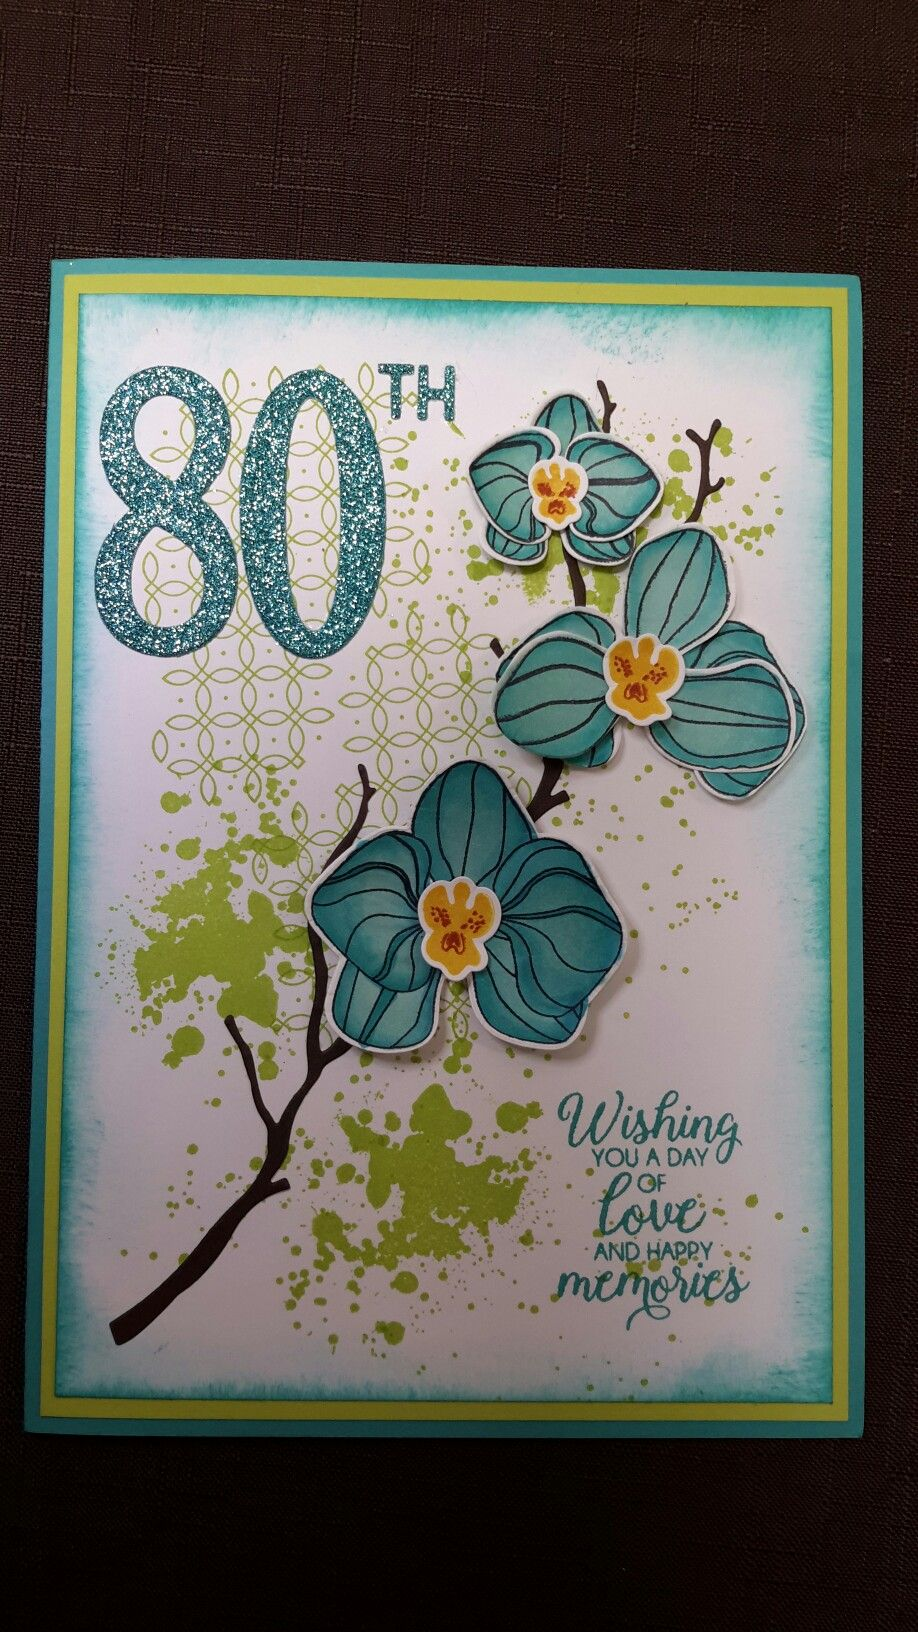 80th Birthday Card For My Mum All Su Products Stamp Sets Climbing Orchid Graceful Garden And Gorgeous G Orchid Card Cool Birthday Cards 80th Birthday Cards